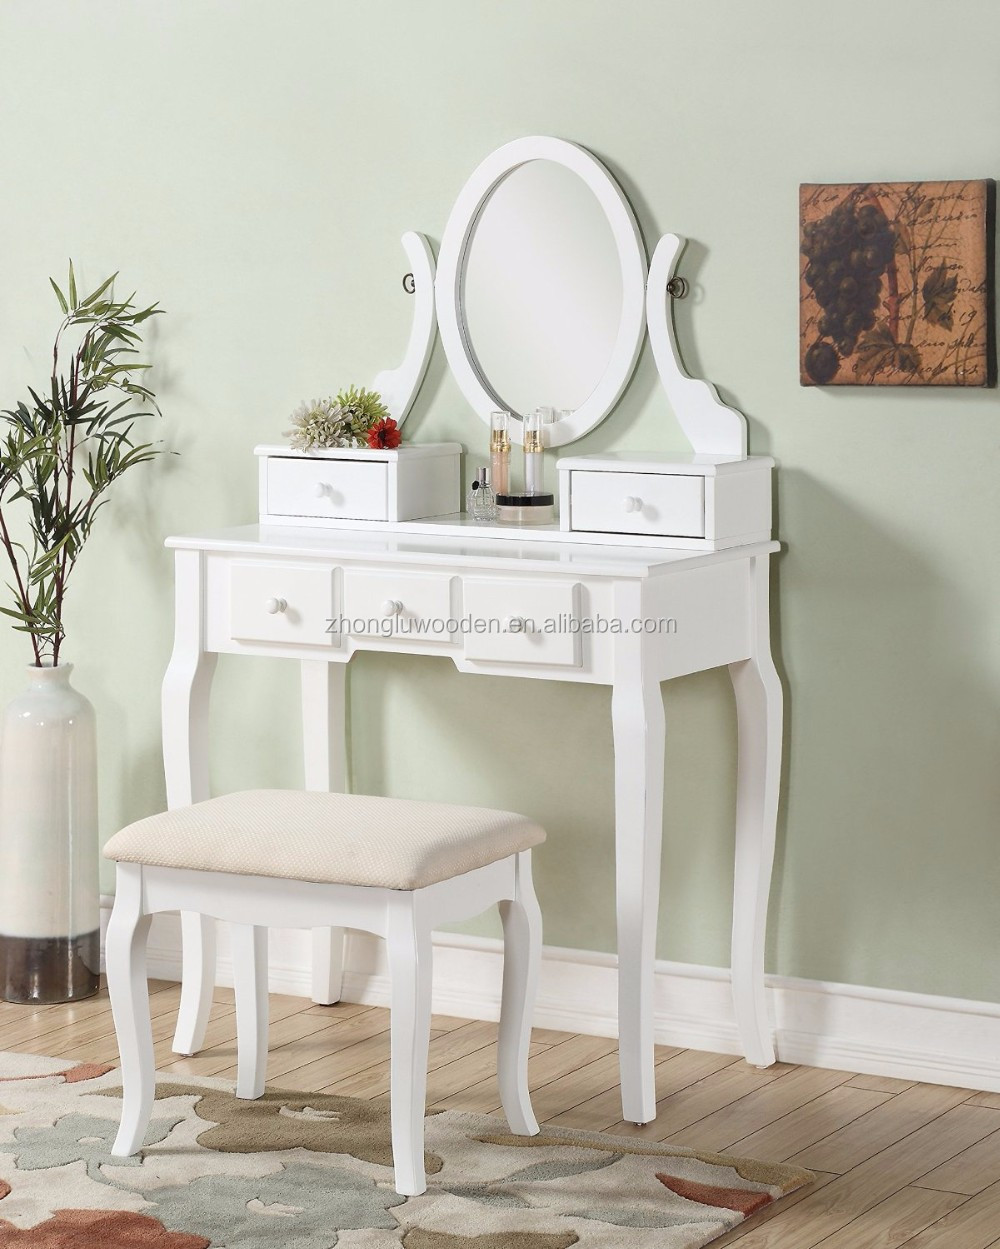 Dressing Table With Cupboard, Dressing Table With Cupboard Suppliers And  Manufacturers At Alibaba.com